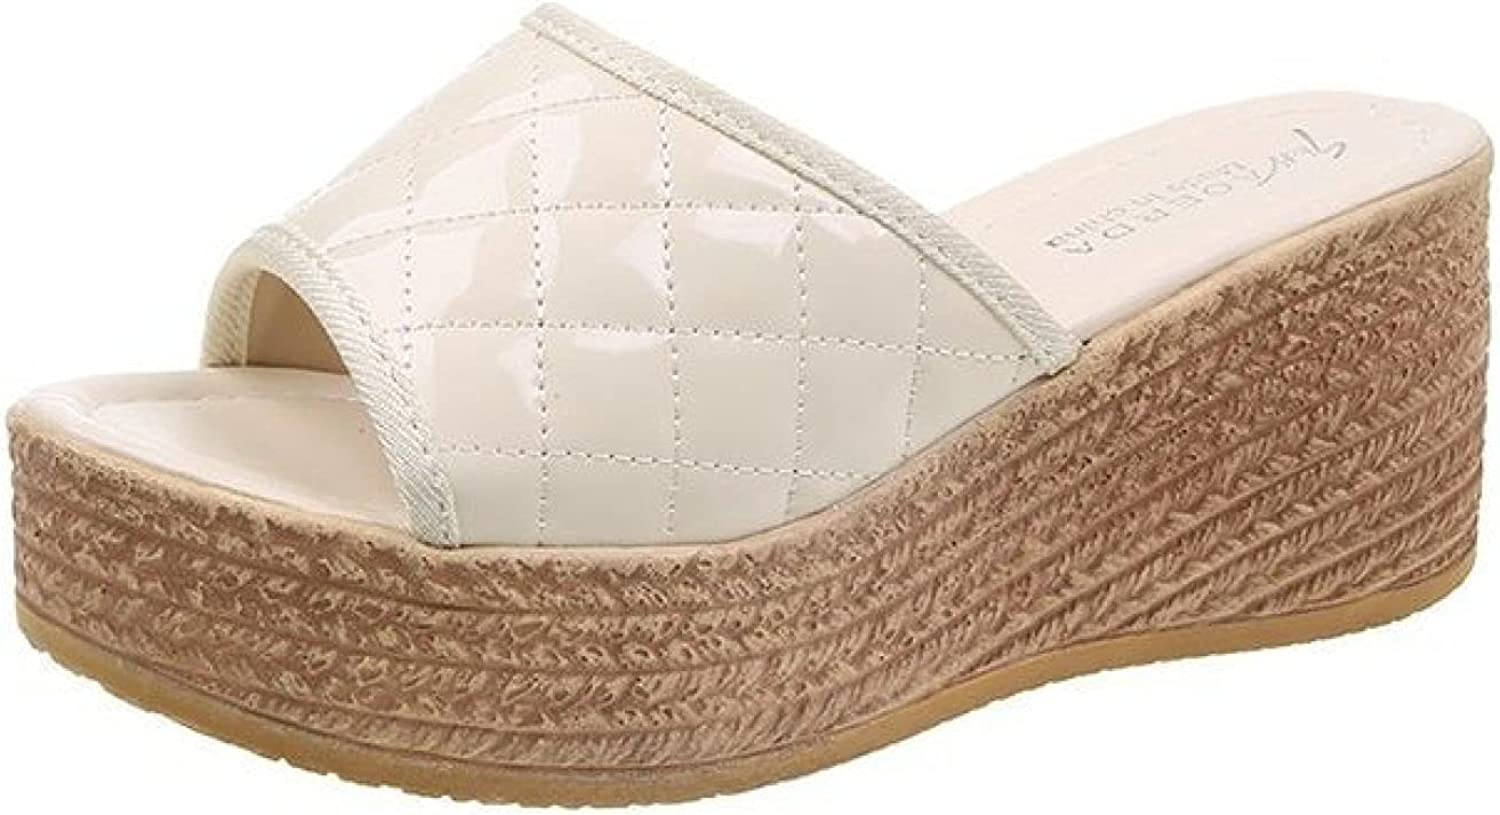 Womens Wedges Sandals Platform Chic Shipping Max 81% OFF included To Vamp Peep Leather Lattice